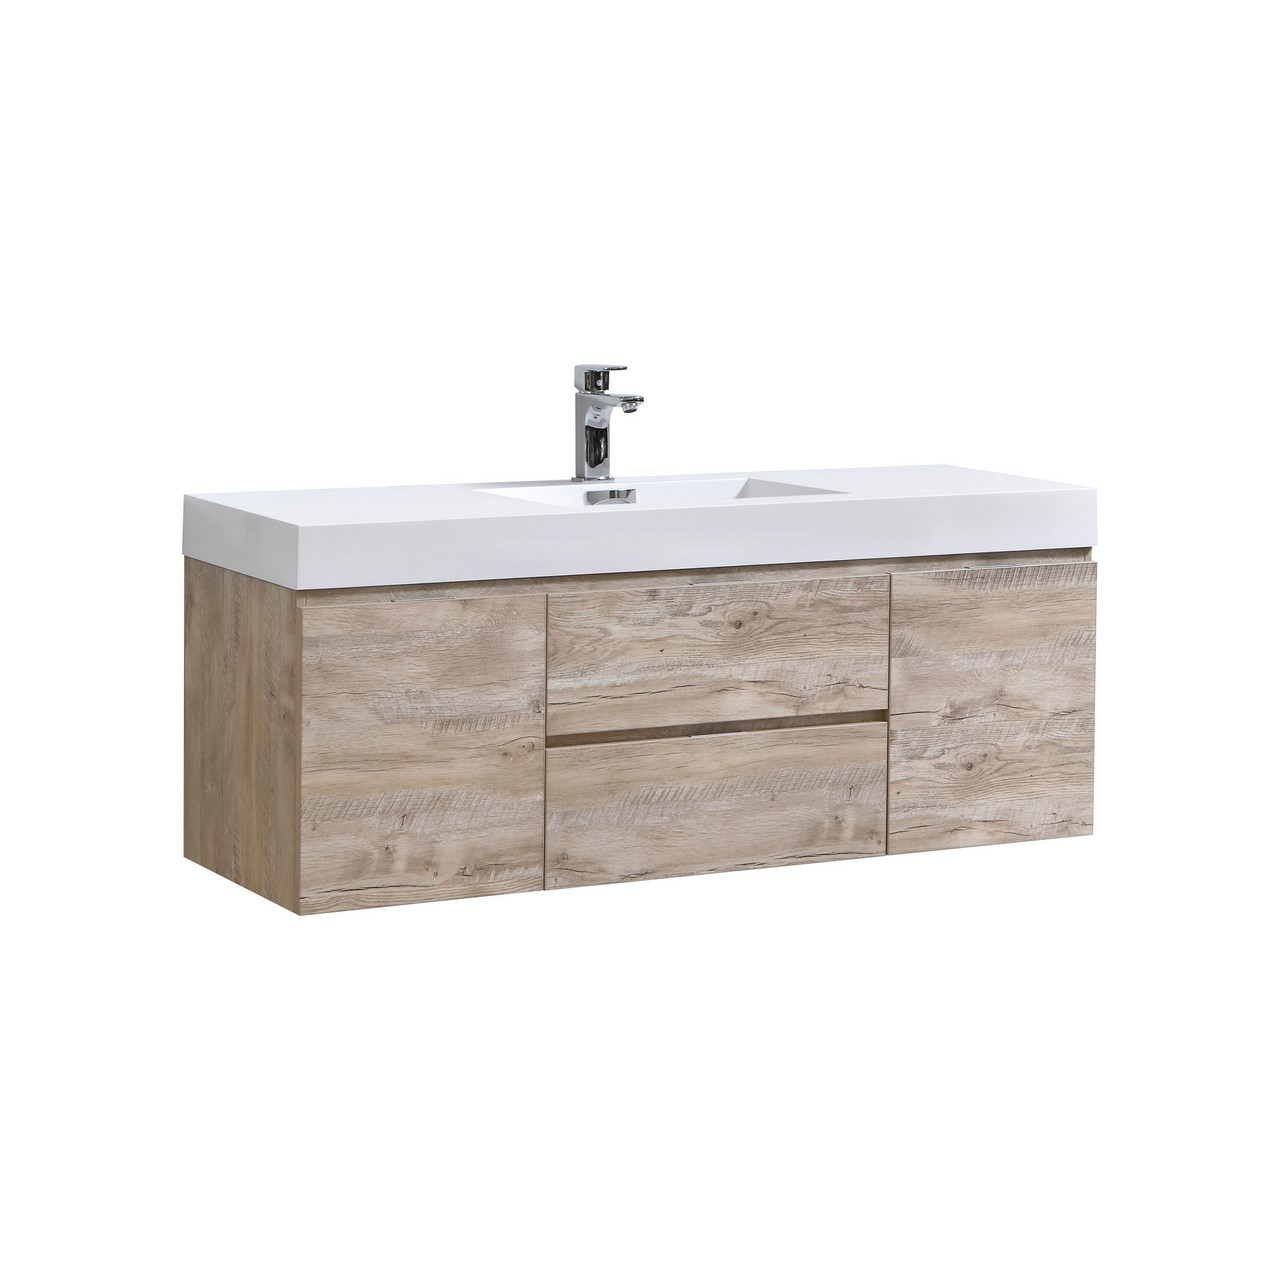 "Kubebath Bliss 60"" Single Sink Nature Wood Wall Mount Modern Bathroom Vanity"